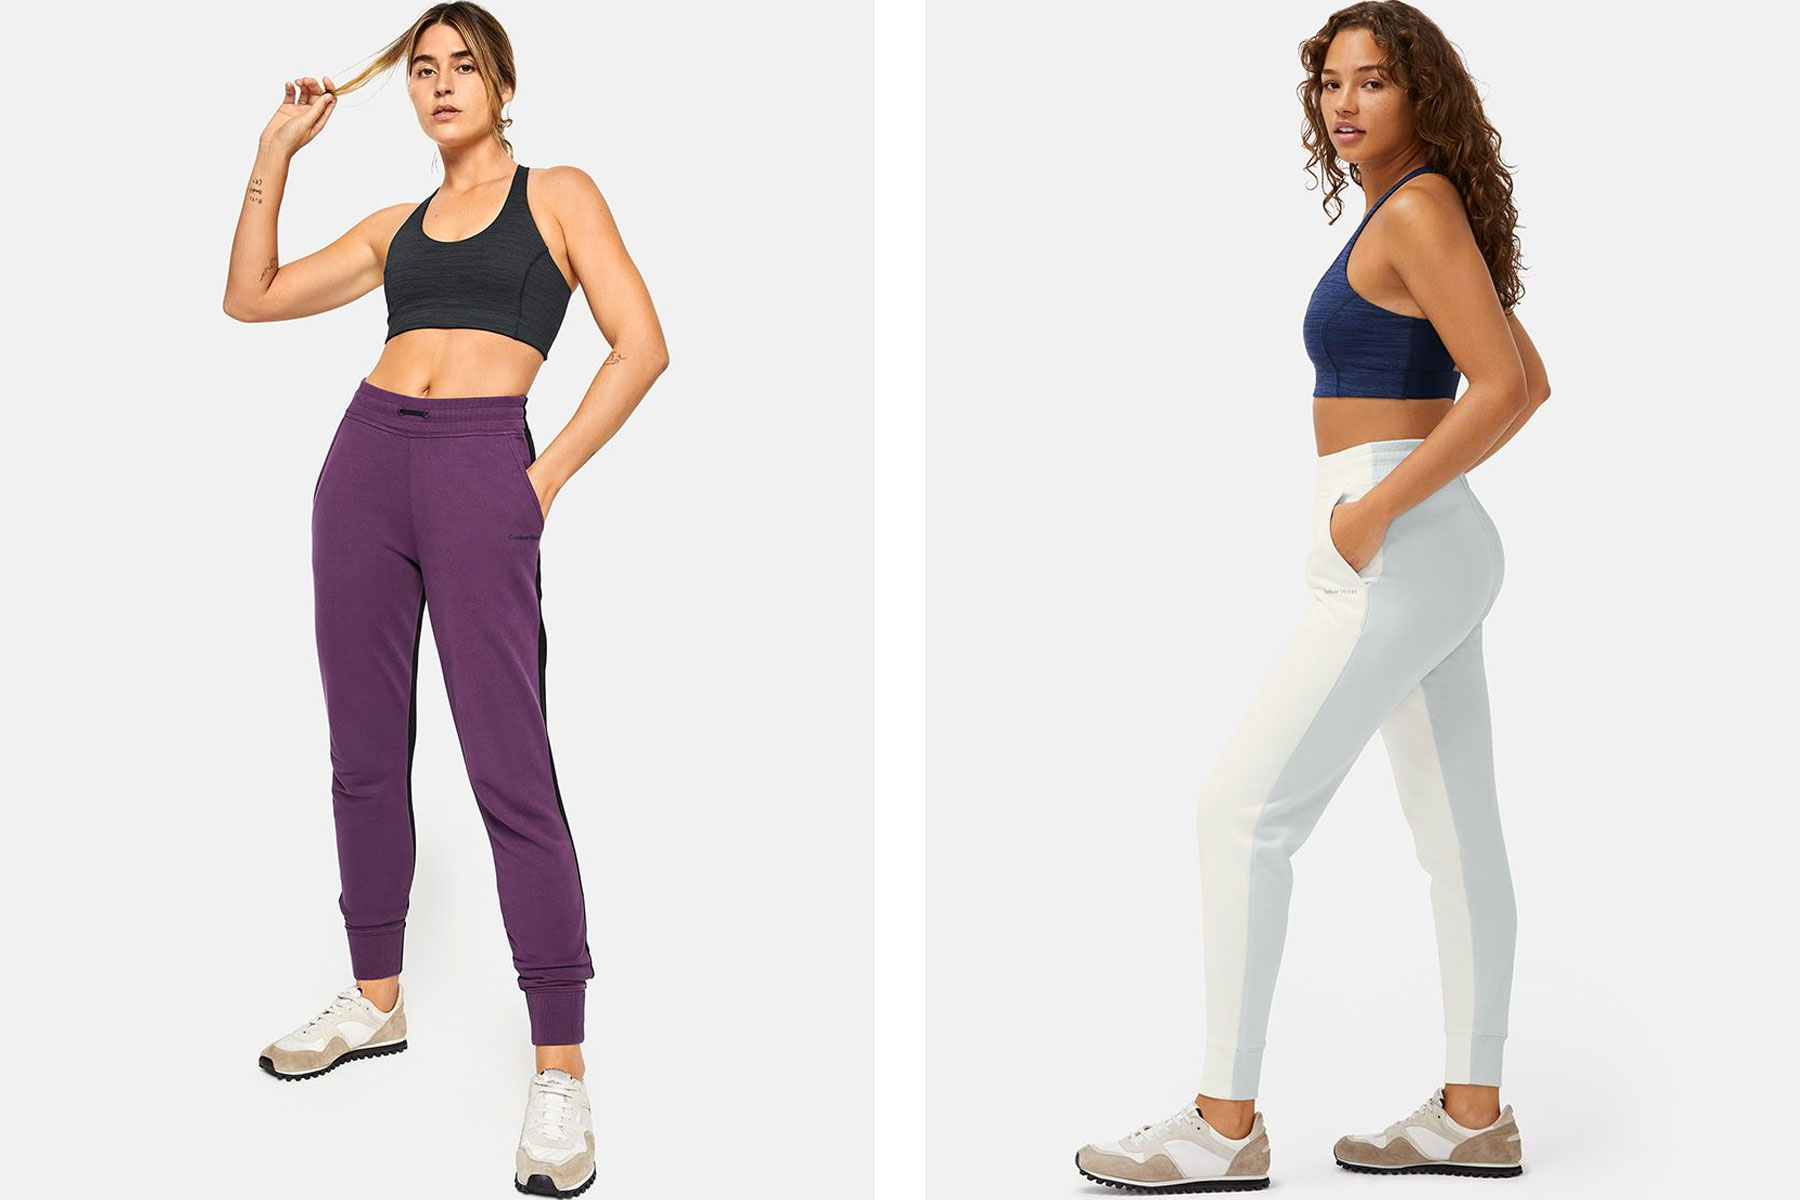 Women wearing purple and white and blue joggers